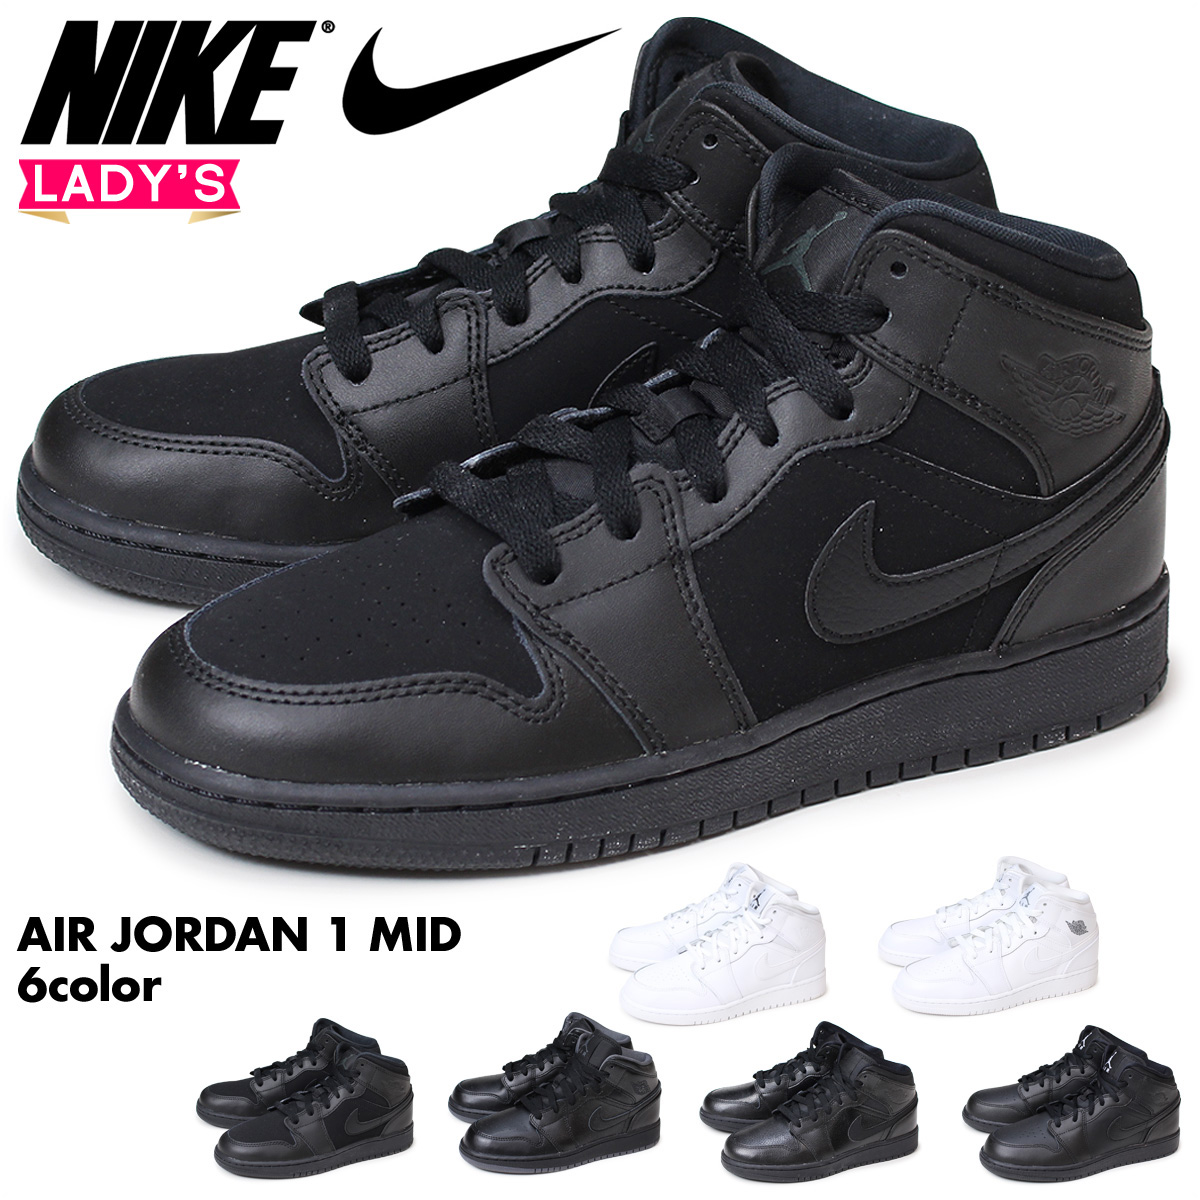 san francisco 0b38c e2f76 NIKE Nike Air Jordan sneakers Lady's AIR JORDAN 1 MID GS Air Jordan 1 mid  shoes ...